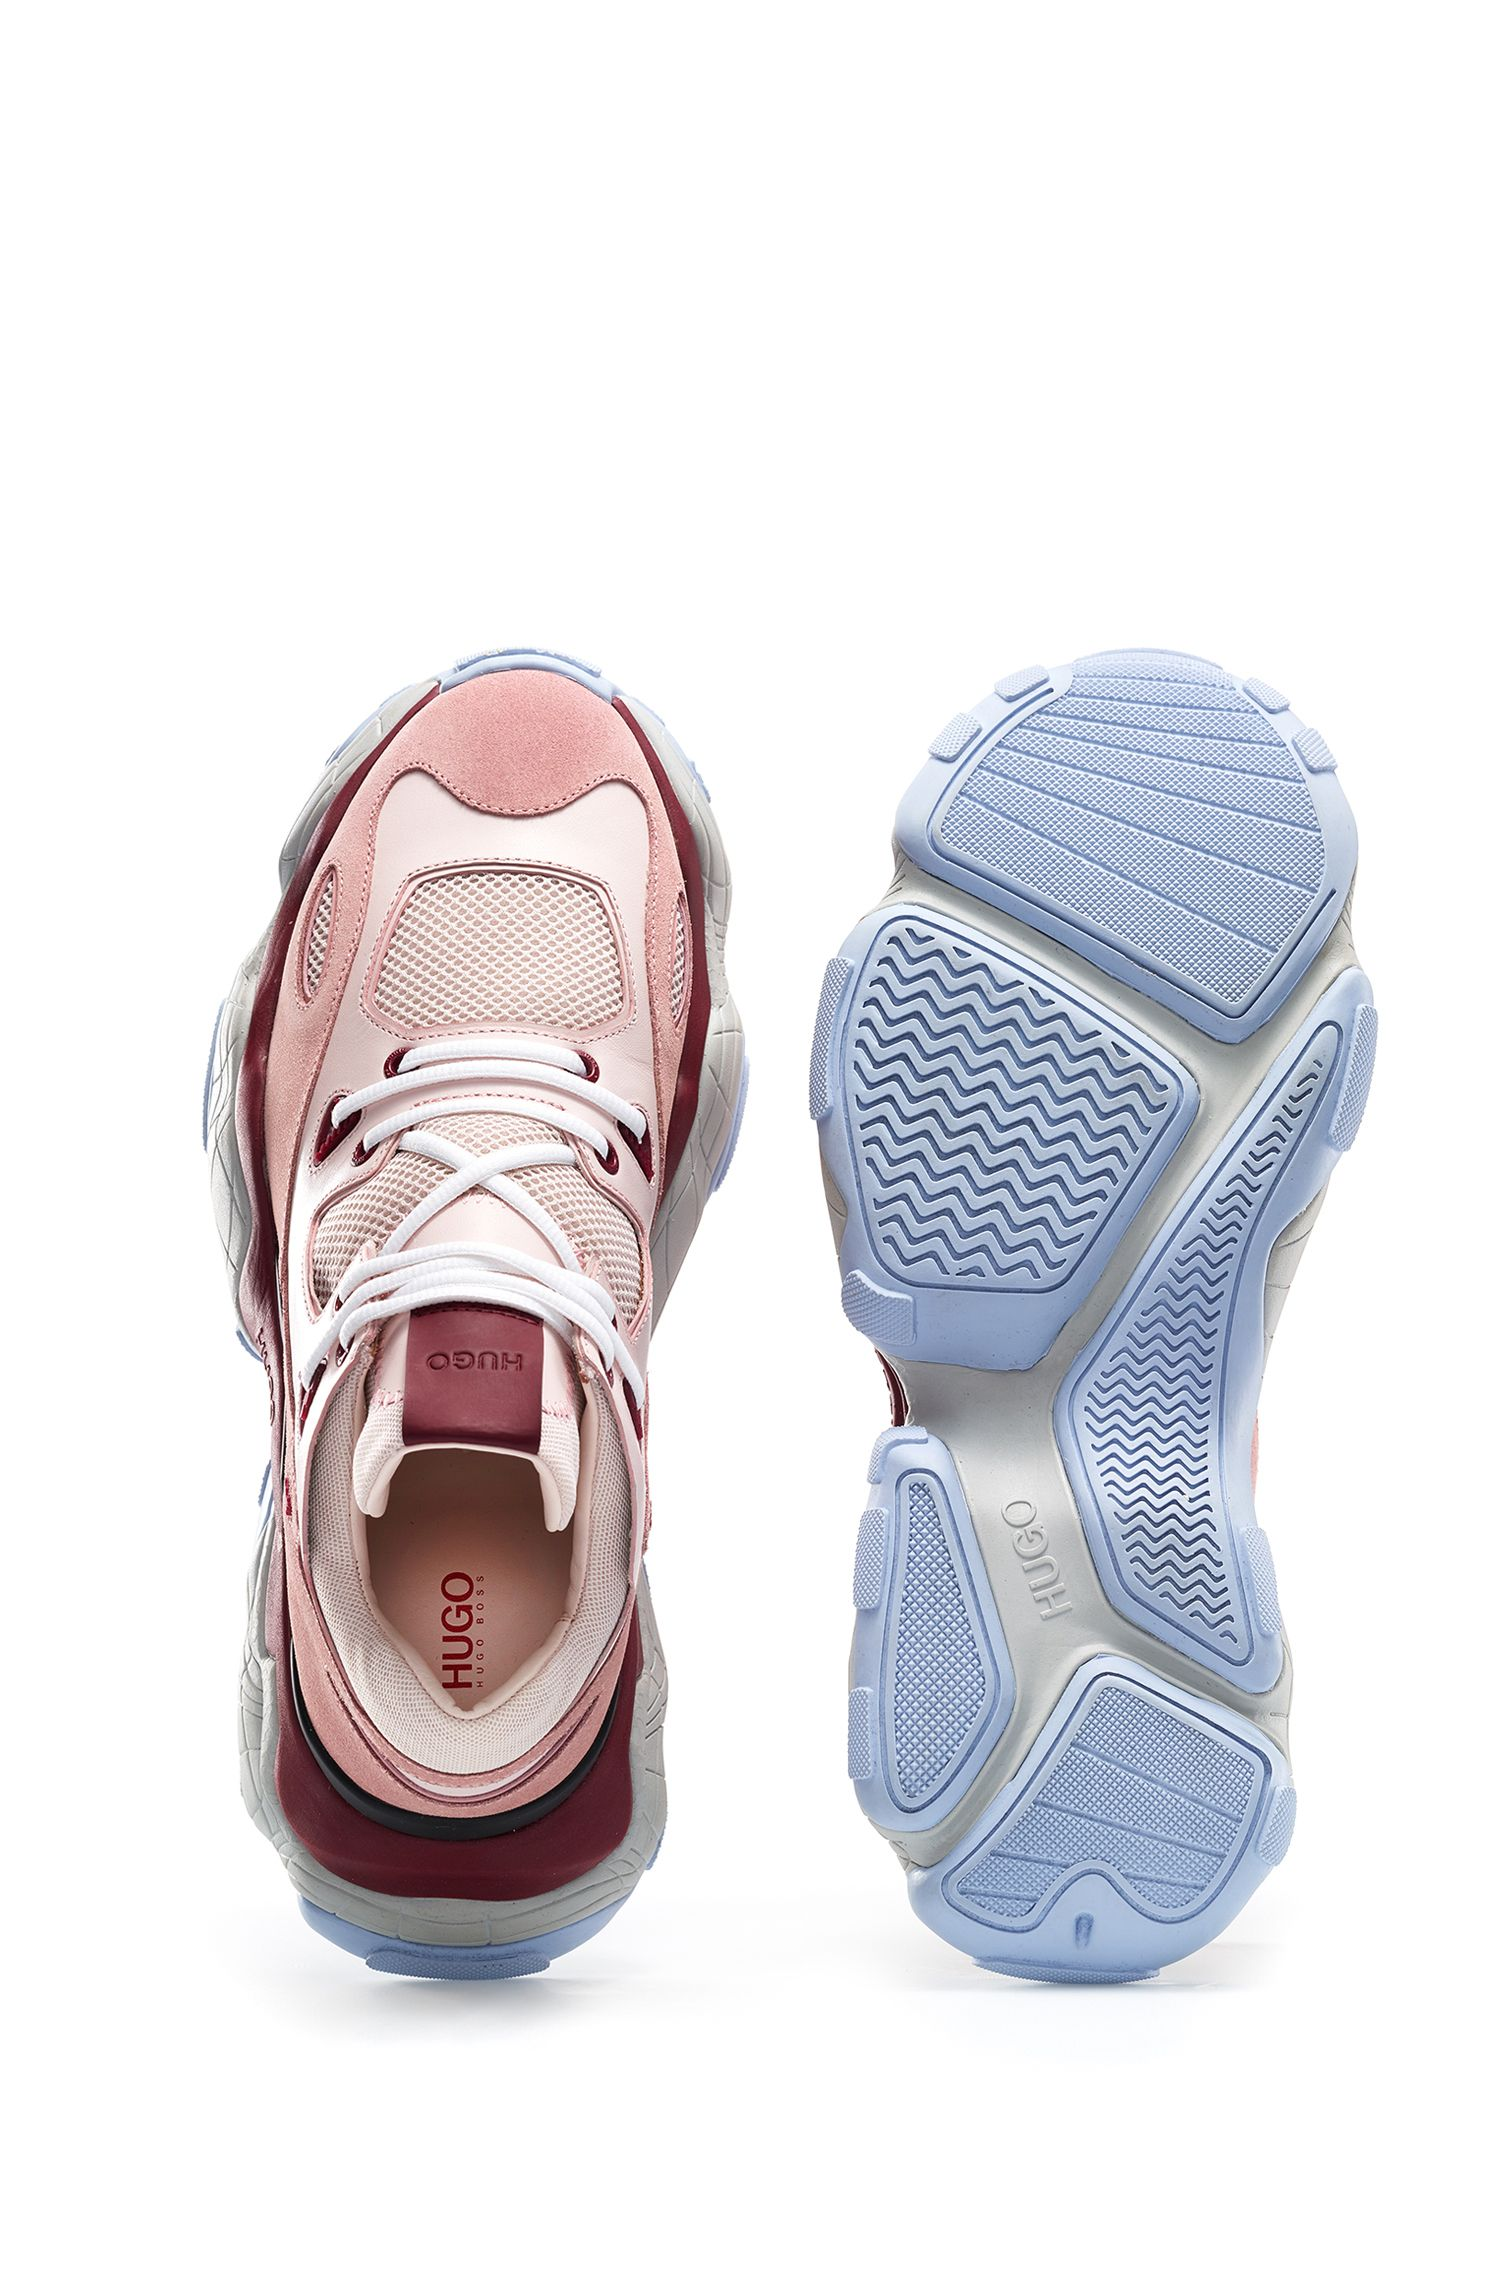 Lace-up trainers in mixed leather with mesh detailing, light pink